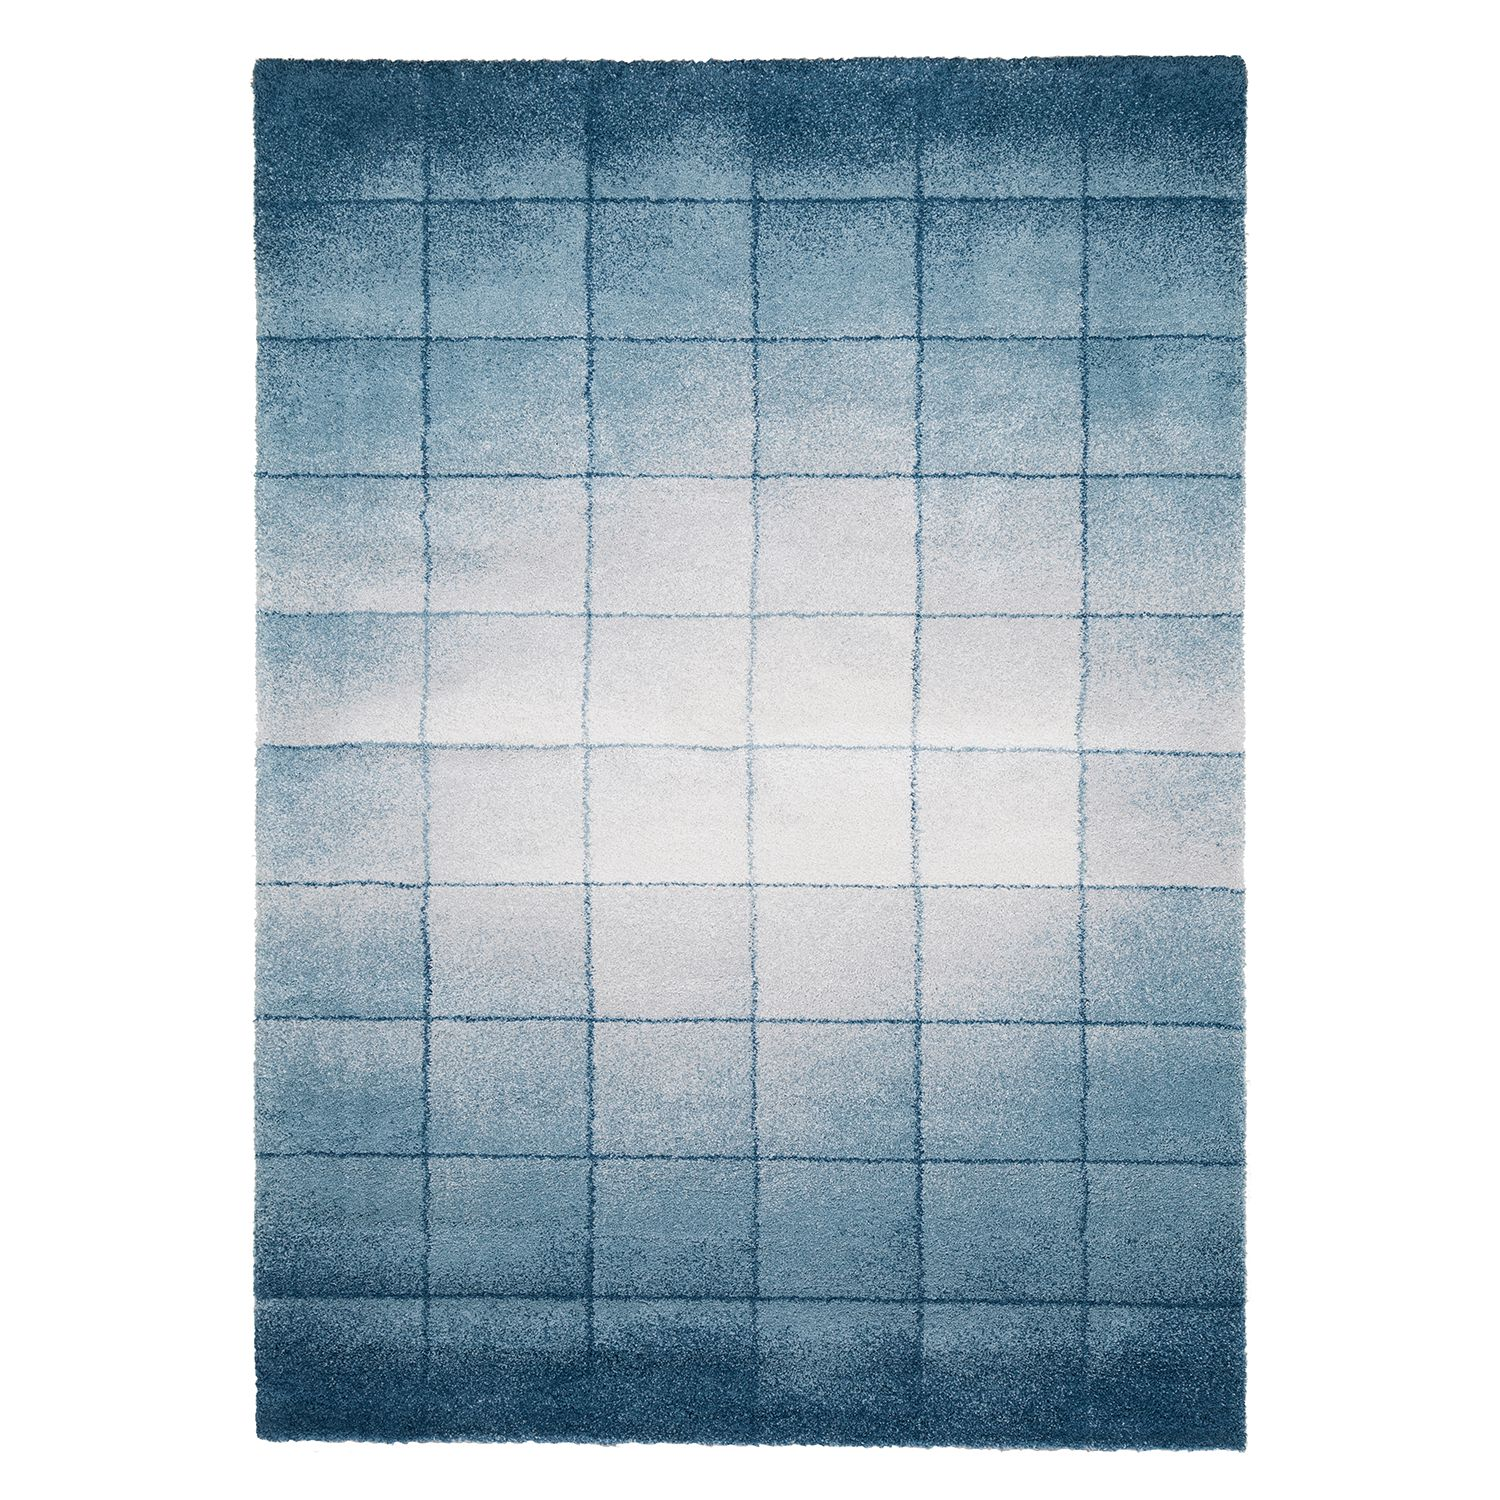 tapis beau cosy tissu m lang bleu gris 160 x 230 cm studio copenhagen le fait main. Black Bedroom Furniture Sets. Home Design Ideas